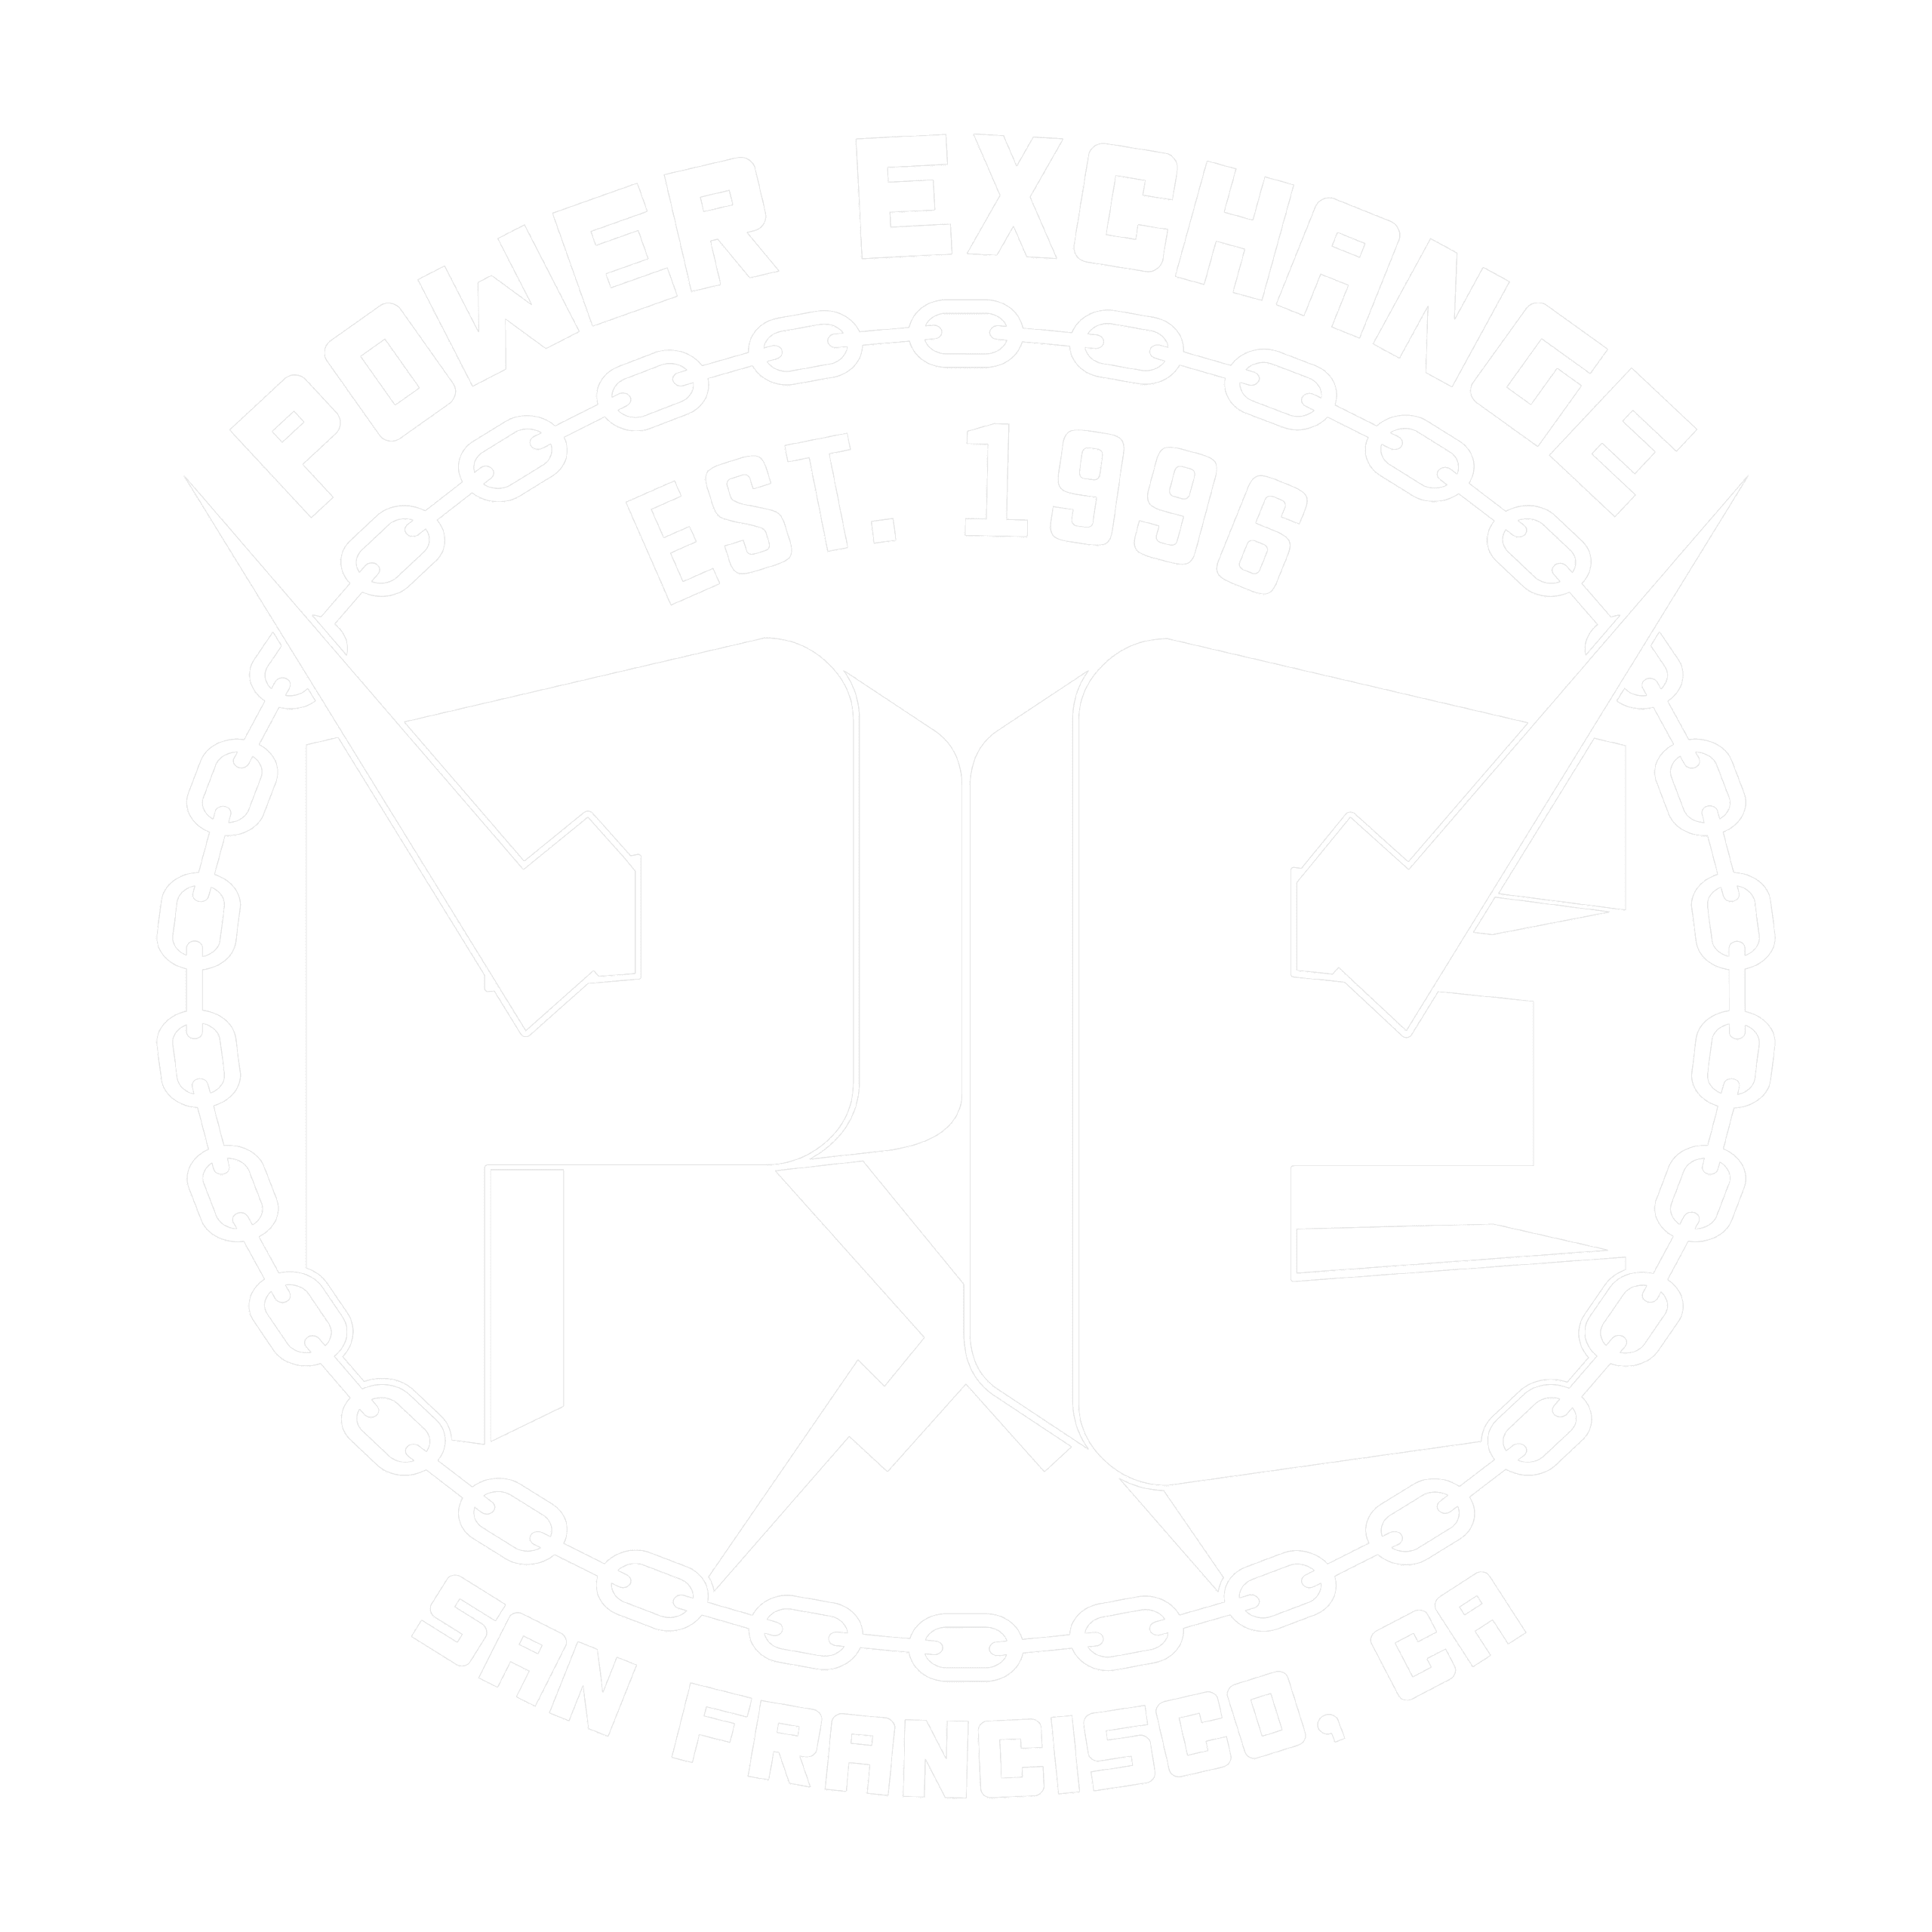 Power Exchange